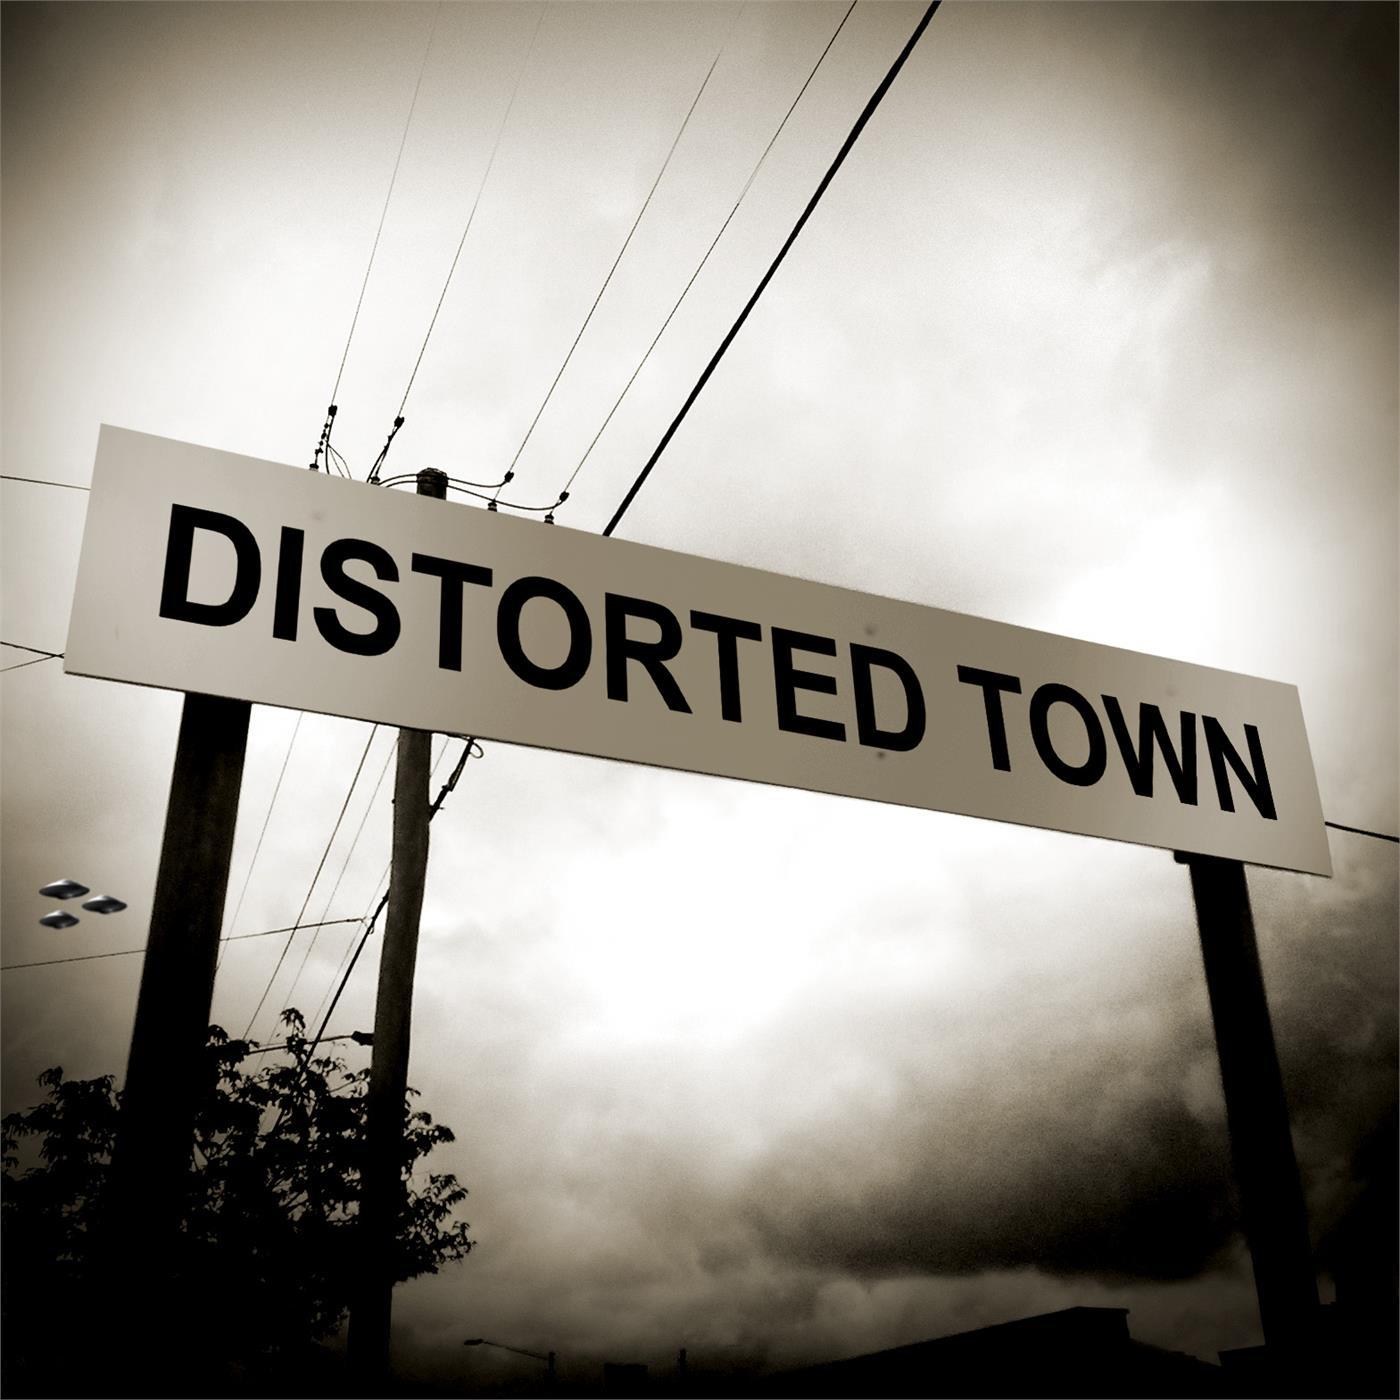 Distorted Town